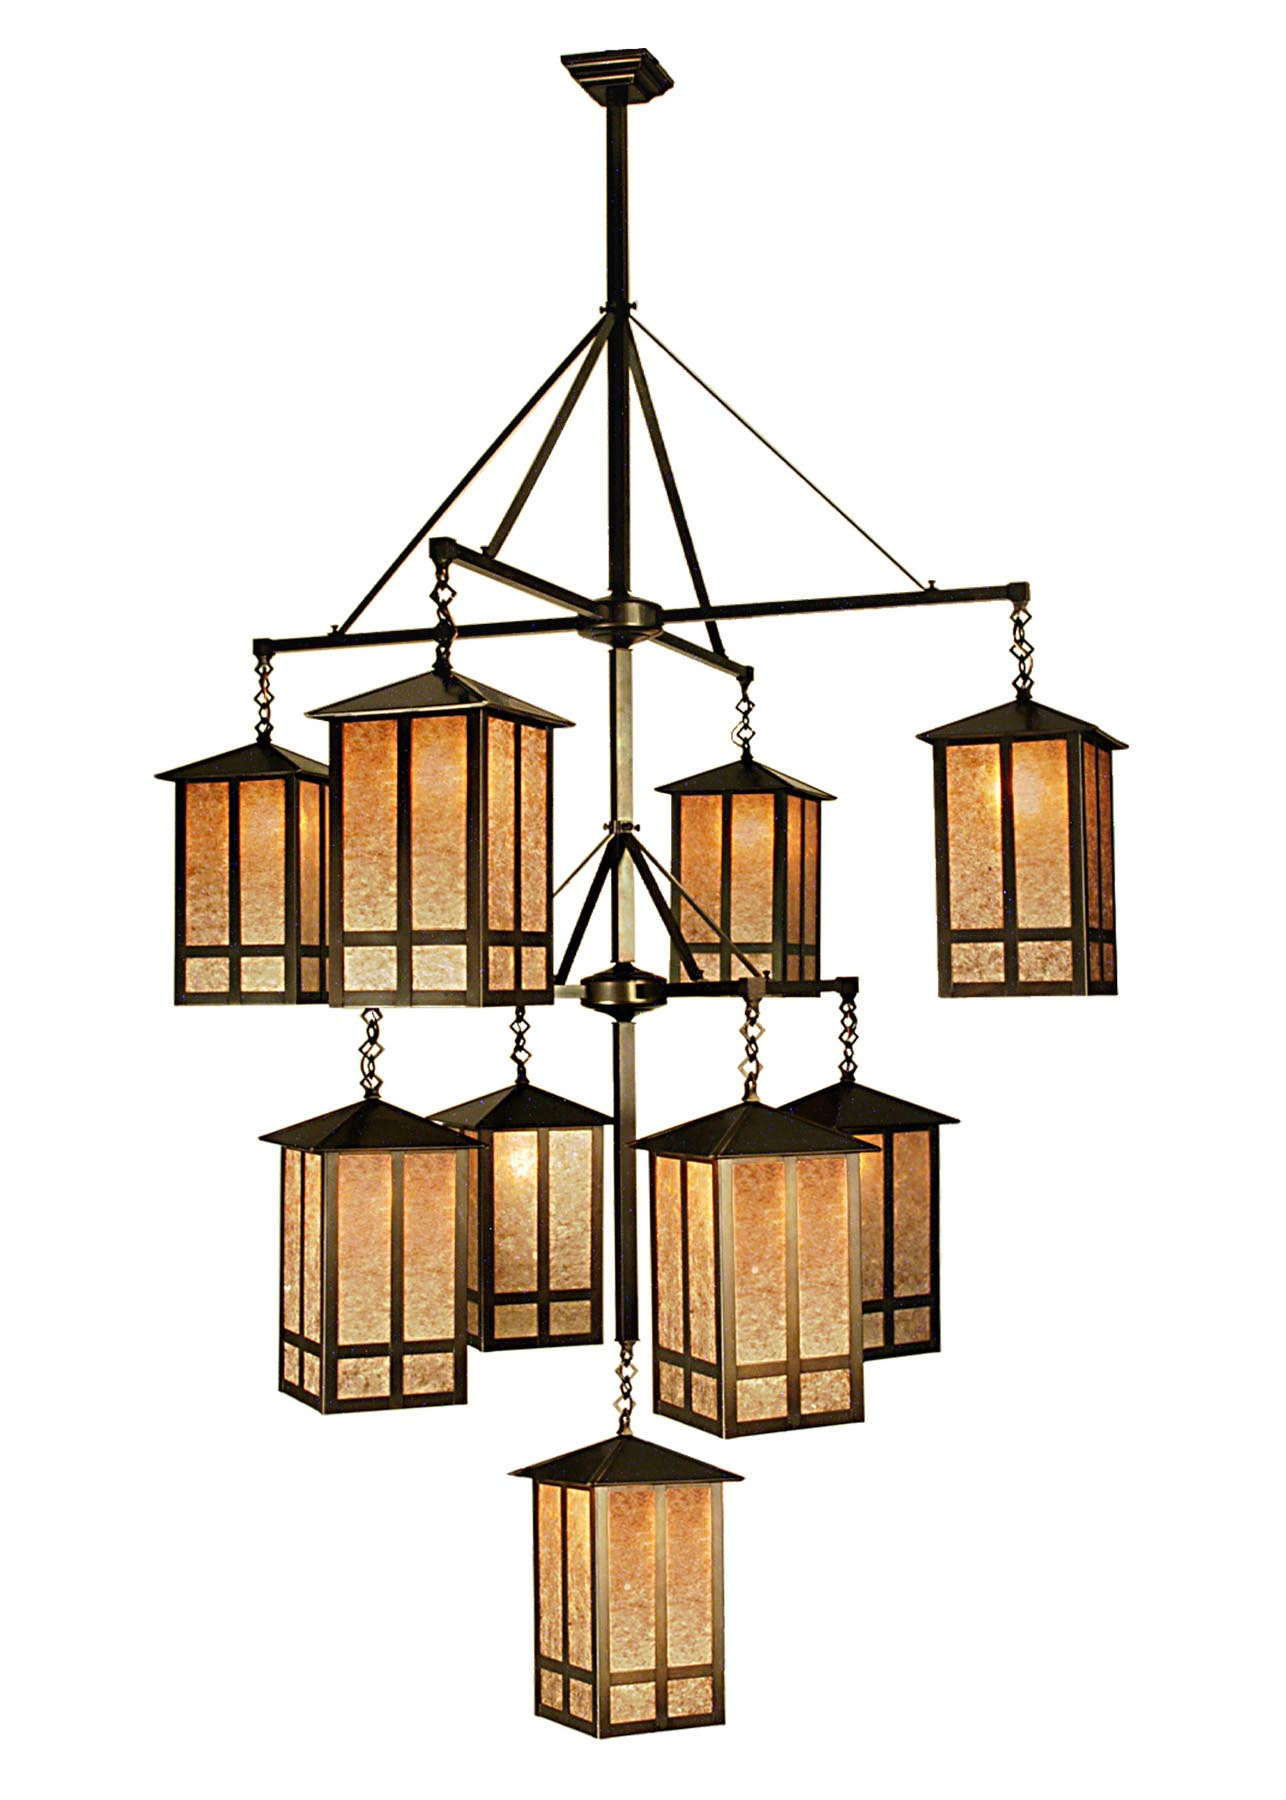 Hanging Lantern Lighting Fixtures